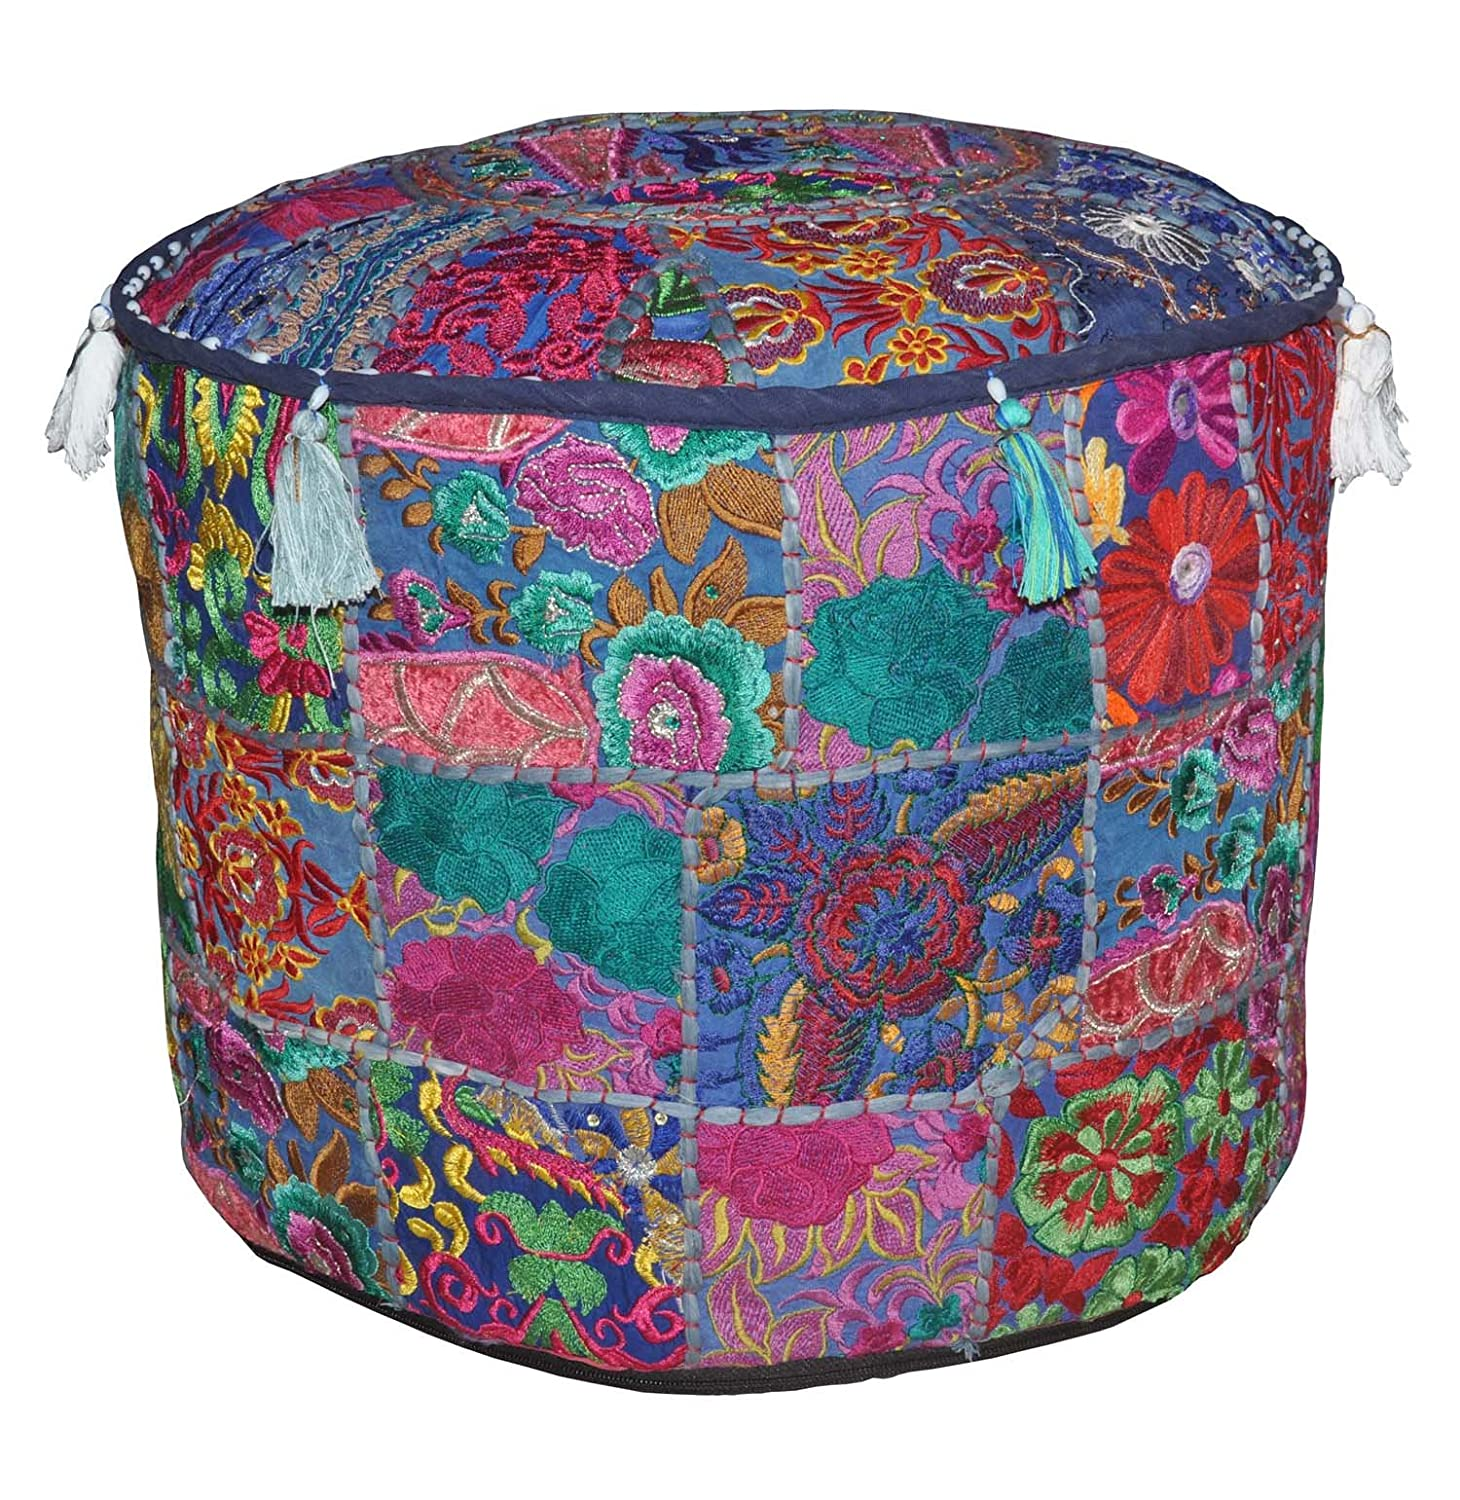 Rajasthali Indian Vintage Ottoman Embellished With Embroidery & Patchwork Foot Stool Floor Cushion, 46 X 33 Cm